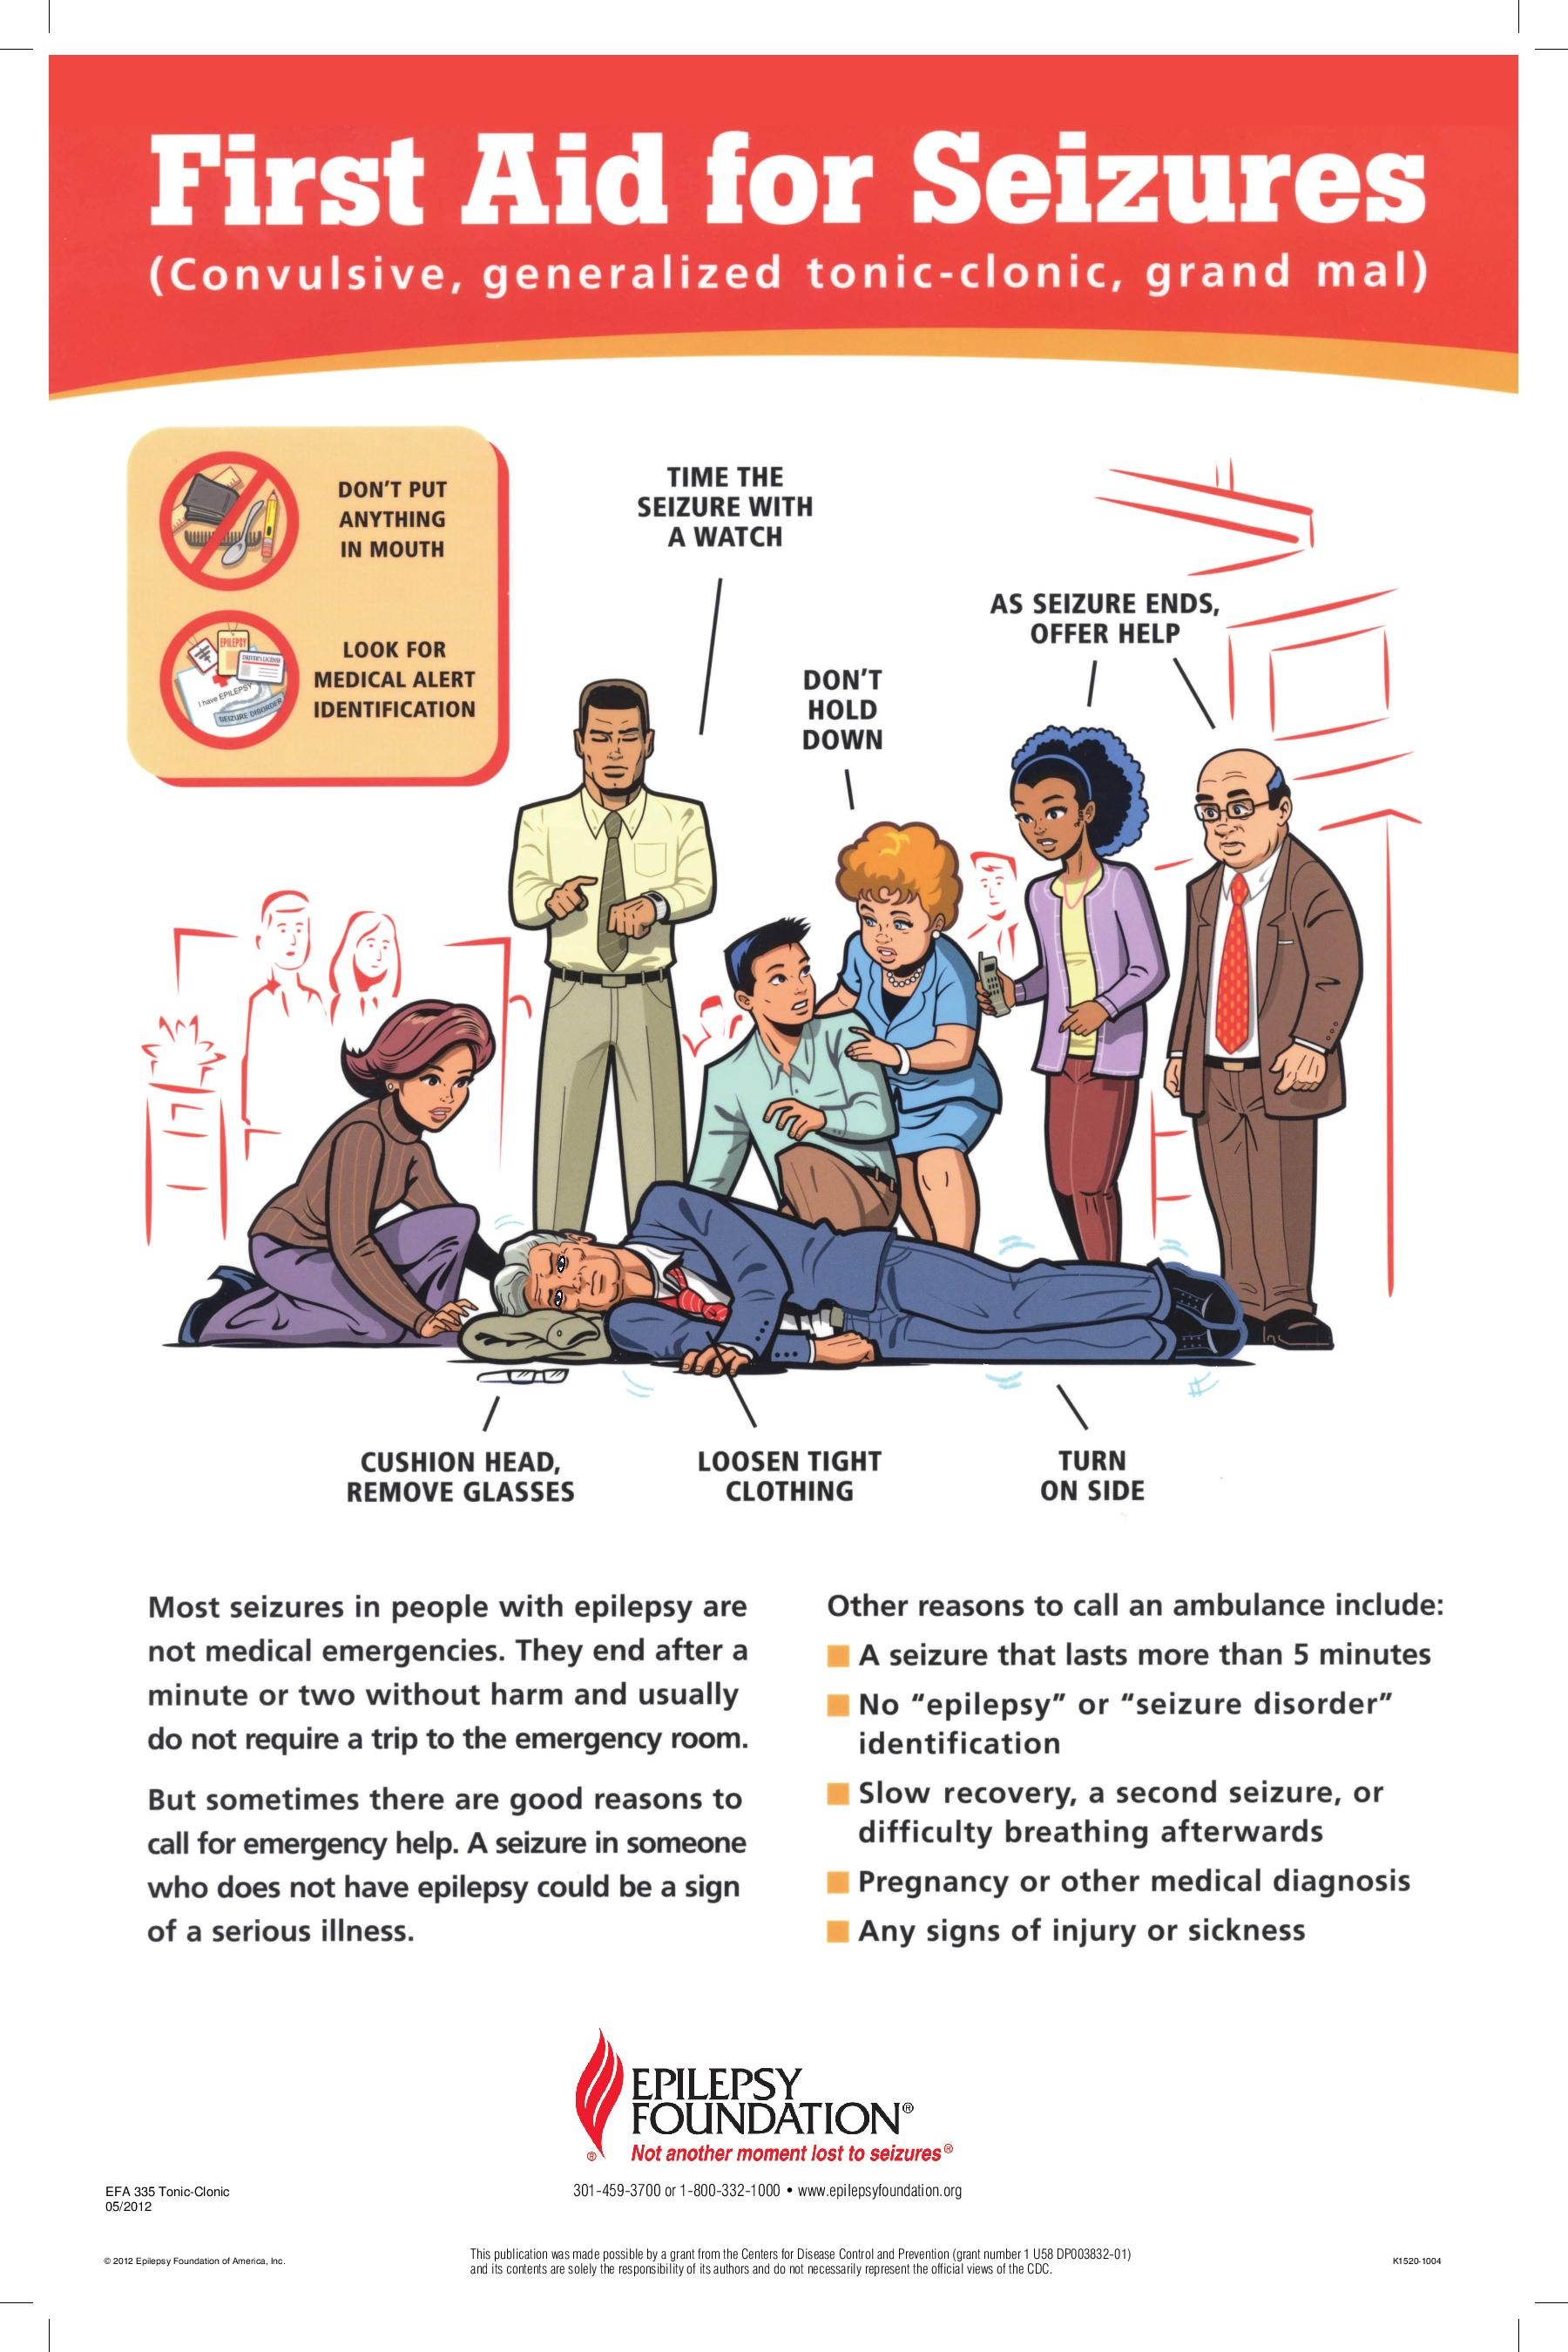 First Aid for Seizures illustrated instructions